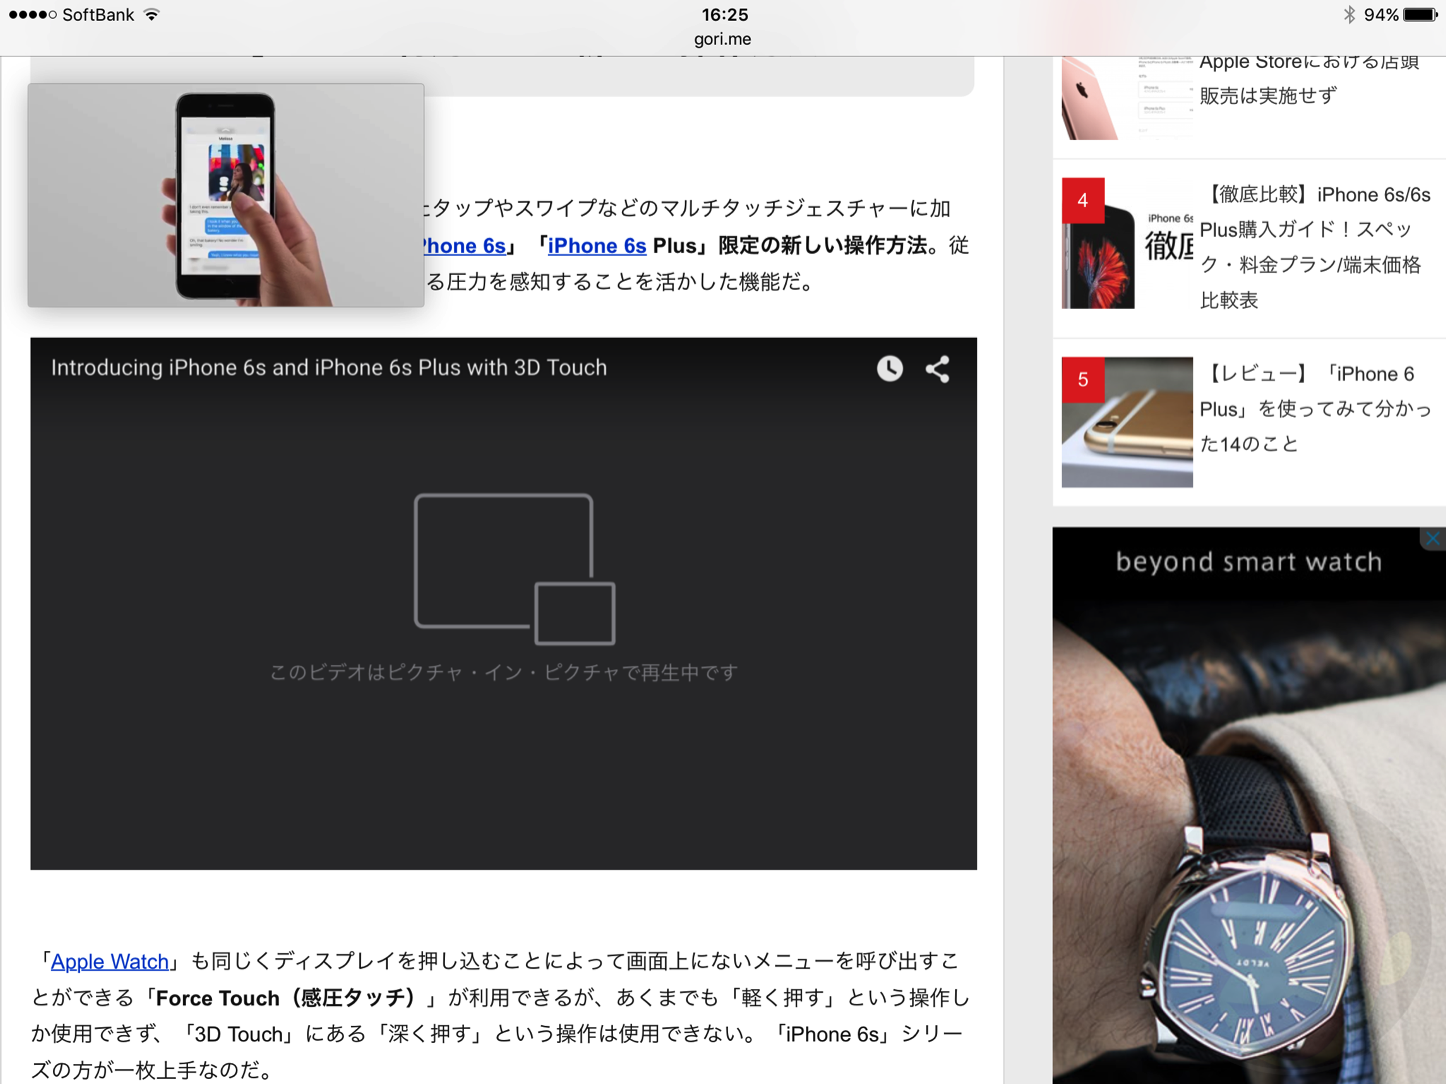 IOS 9 iPad Picture in Picture